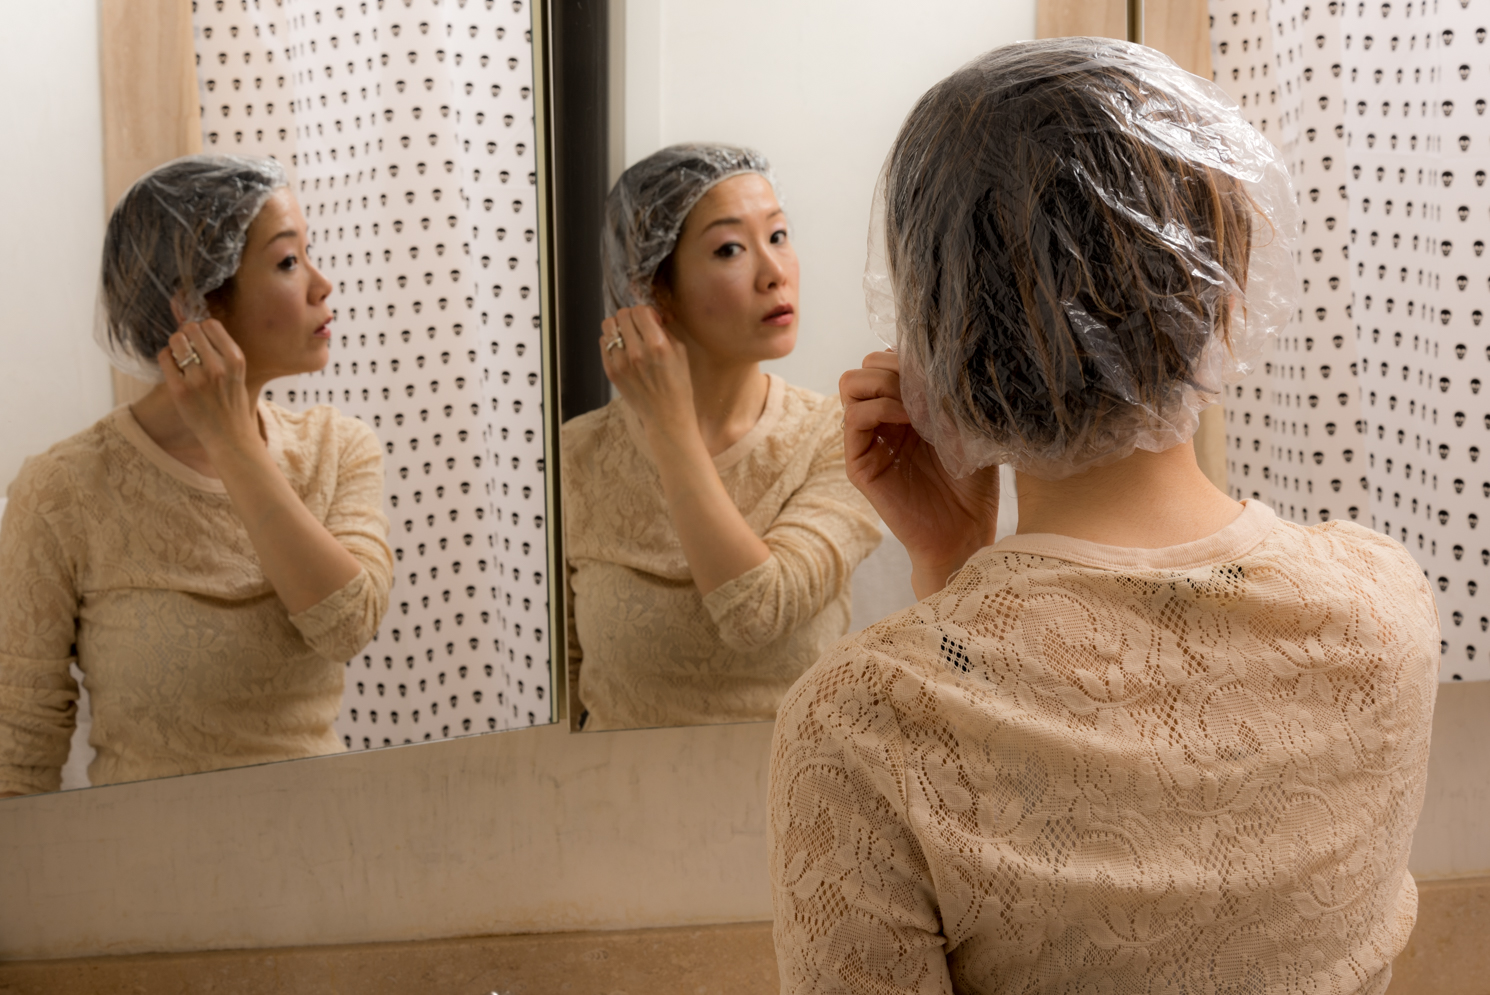 ROCK MAMA NYC LIFESTYLE BLOG - How To Use Mayonnaise As A Hair Treatment